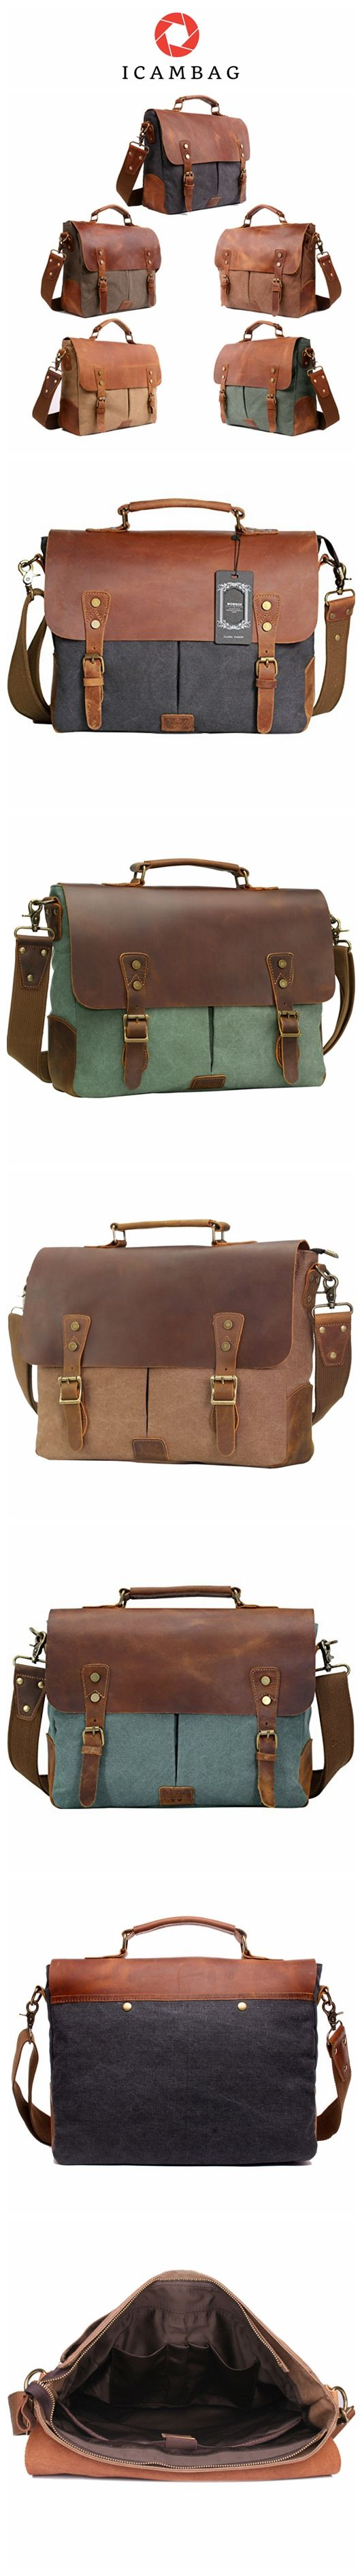 Leather Vintage Messenger Bag for 15.6 inch laptops,Satchel Briefcase Bag for Men and Women Green 6807